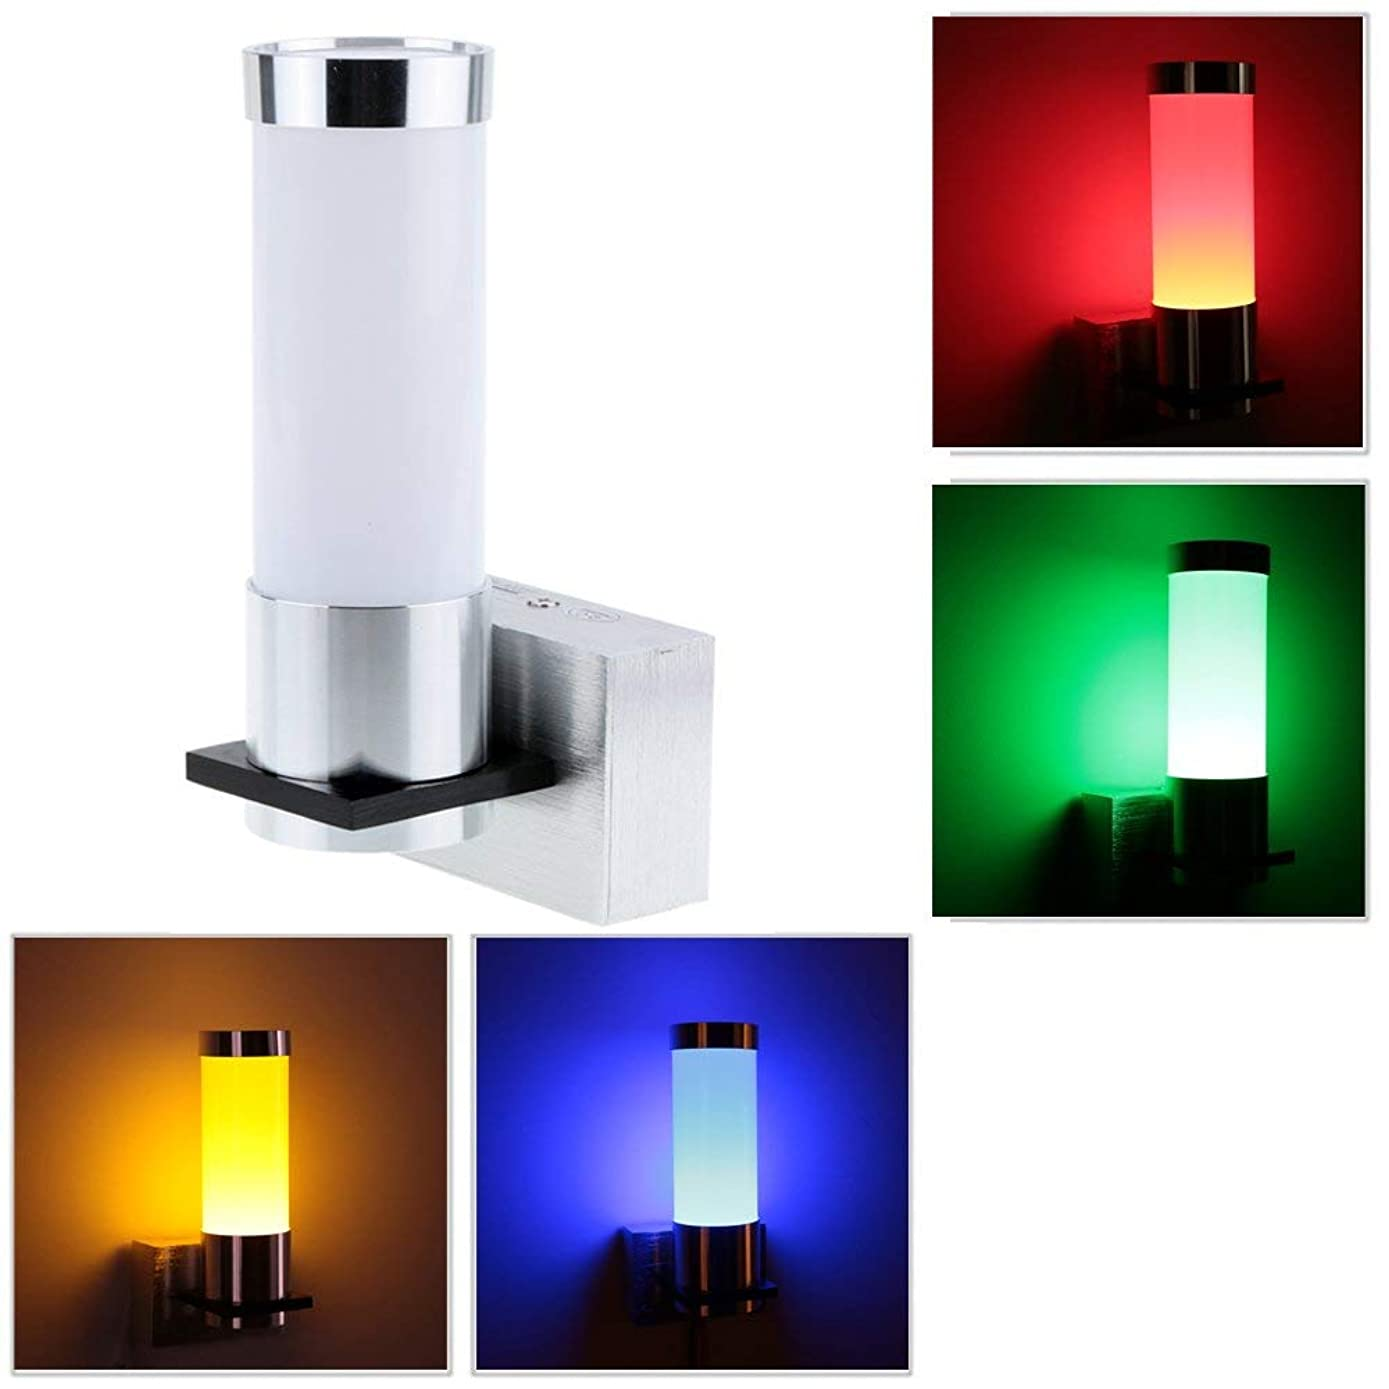 Docooler 1W 85-265V AC Modern Simple Minimalist Aluminum LED Wall Light Sconce Lamp Indoor Bedroom Hallway Aisle Kitchen for Decor Lighting Red Green Blue Yellow